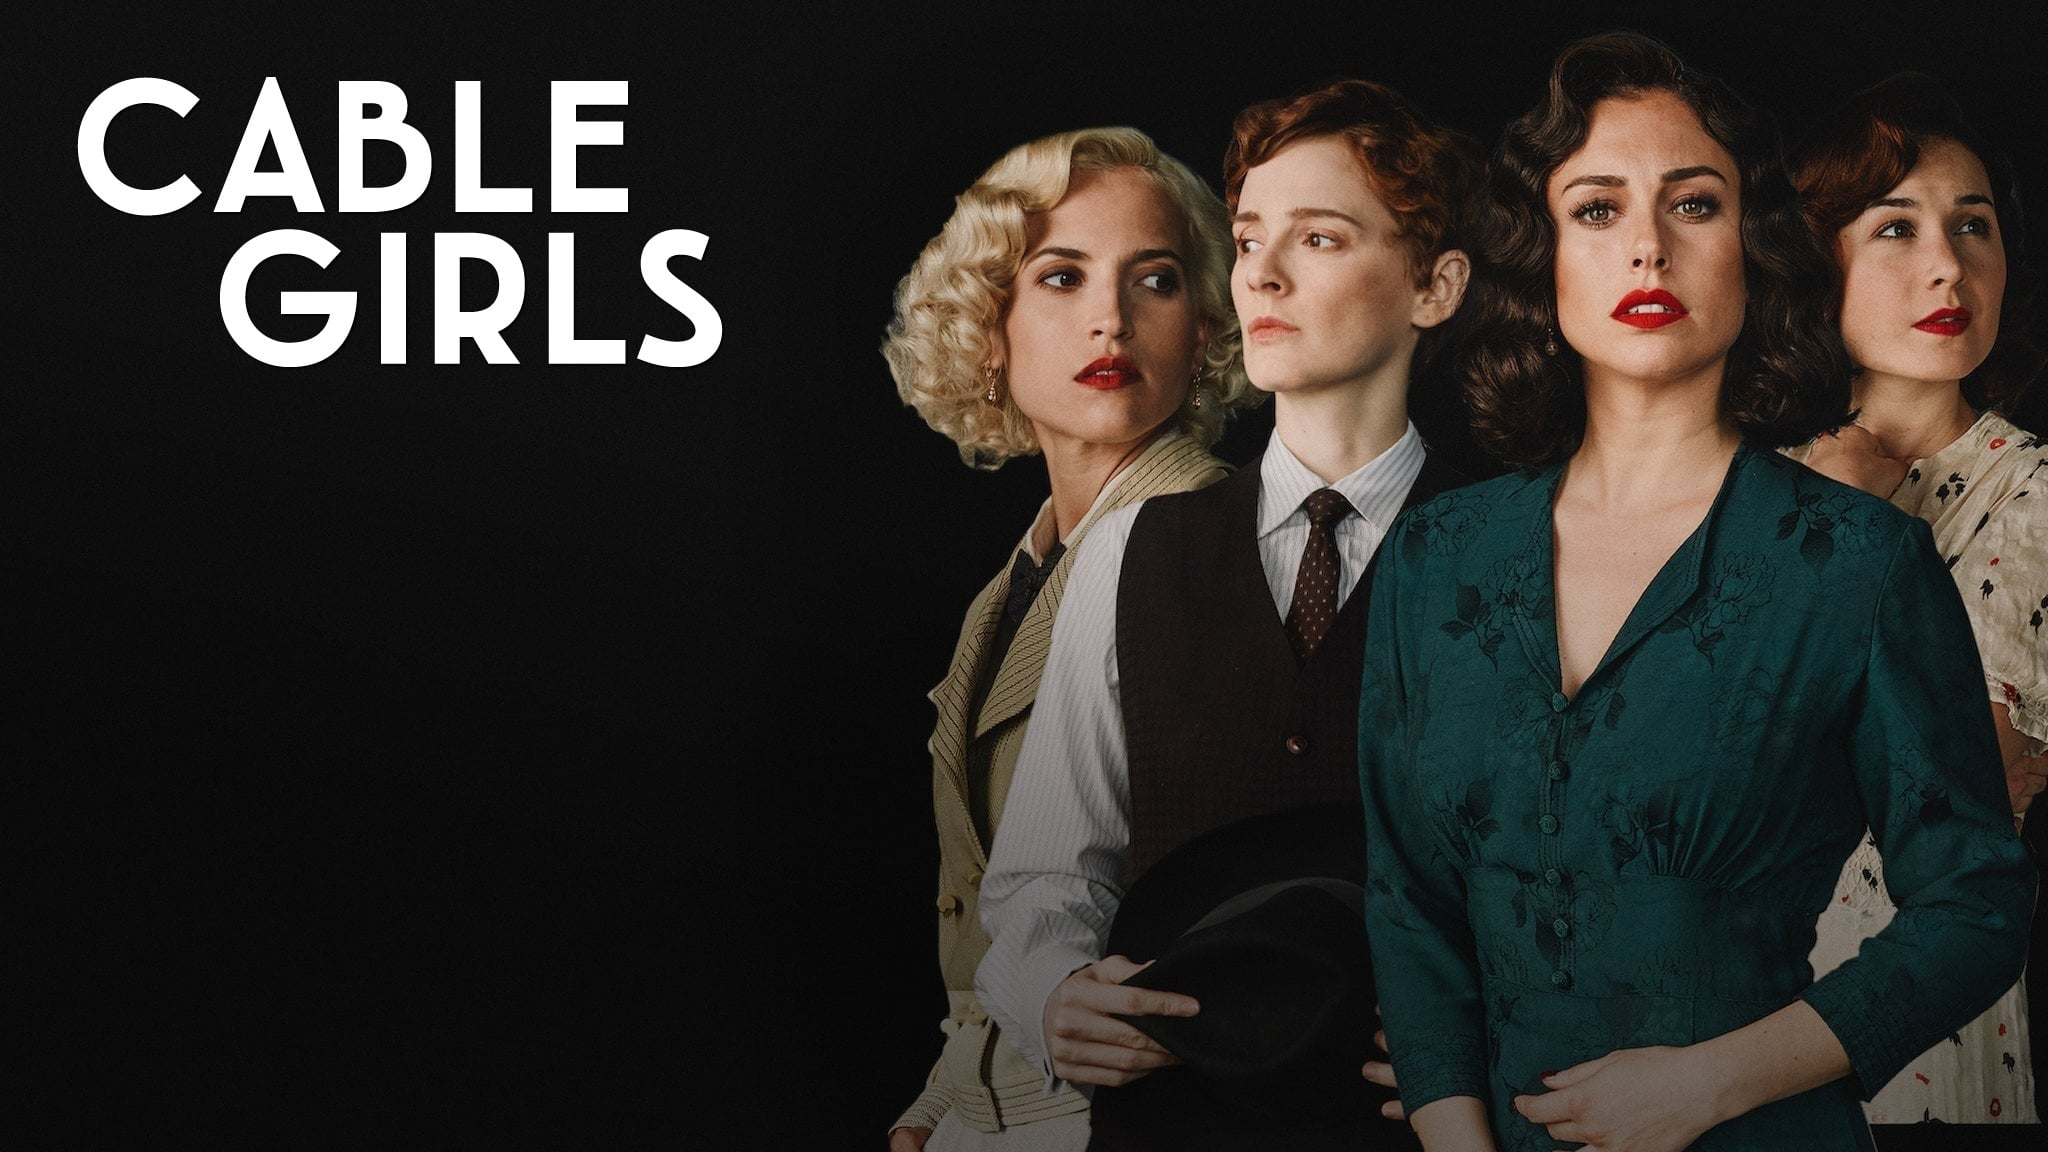 Cable Girls (1970)